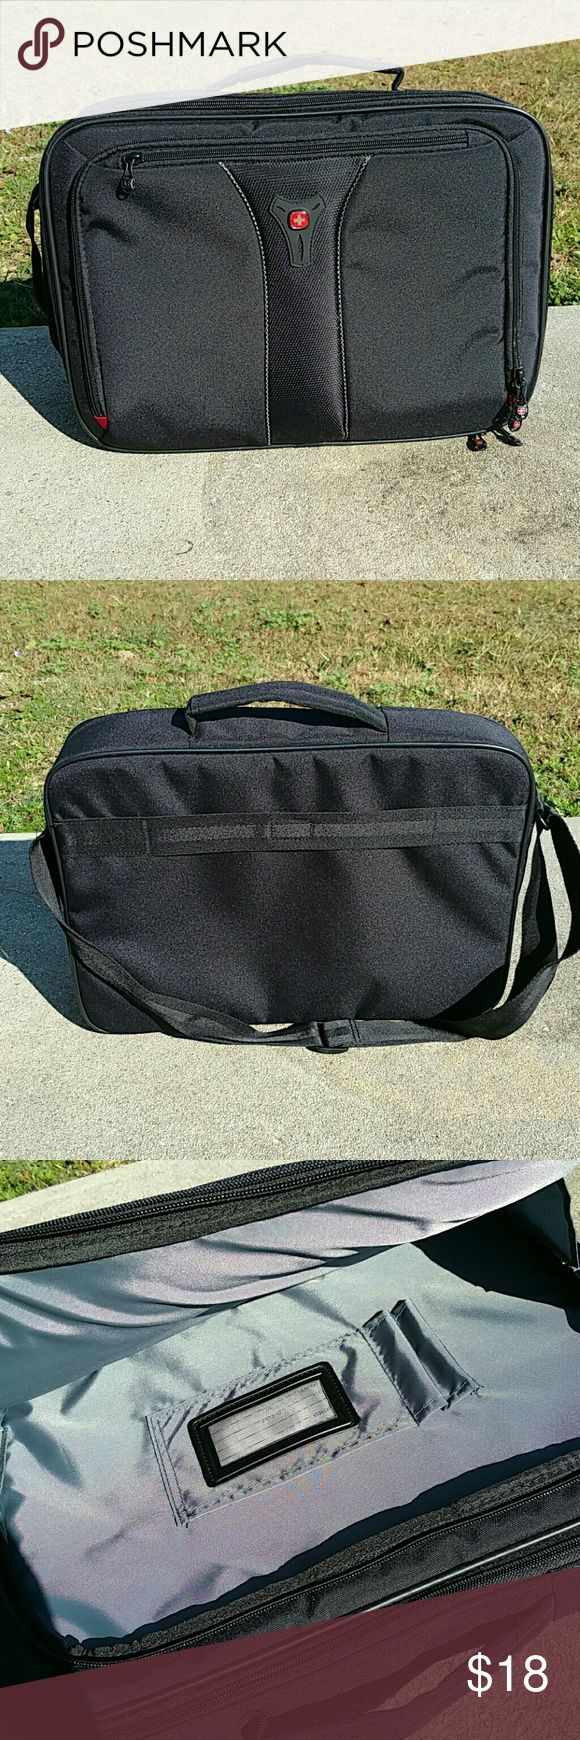 Laptop/Tablet Bag by Swiss Gear Black electronics bag/case can hold up to 15 inch laptop. Special sleeves for tablets and front pocket for Chargers, etc. Comes with shoulder strap for convenience. Very lightly used. Swiss Gear Bags Laptop Bags